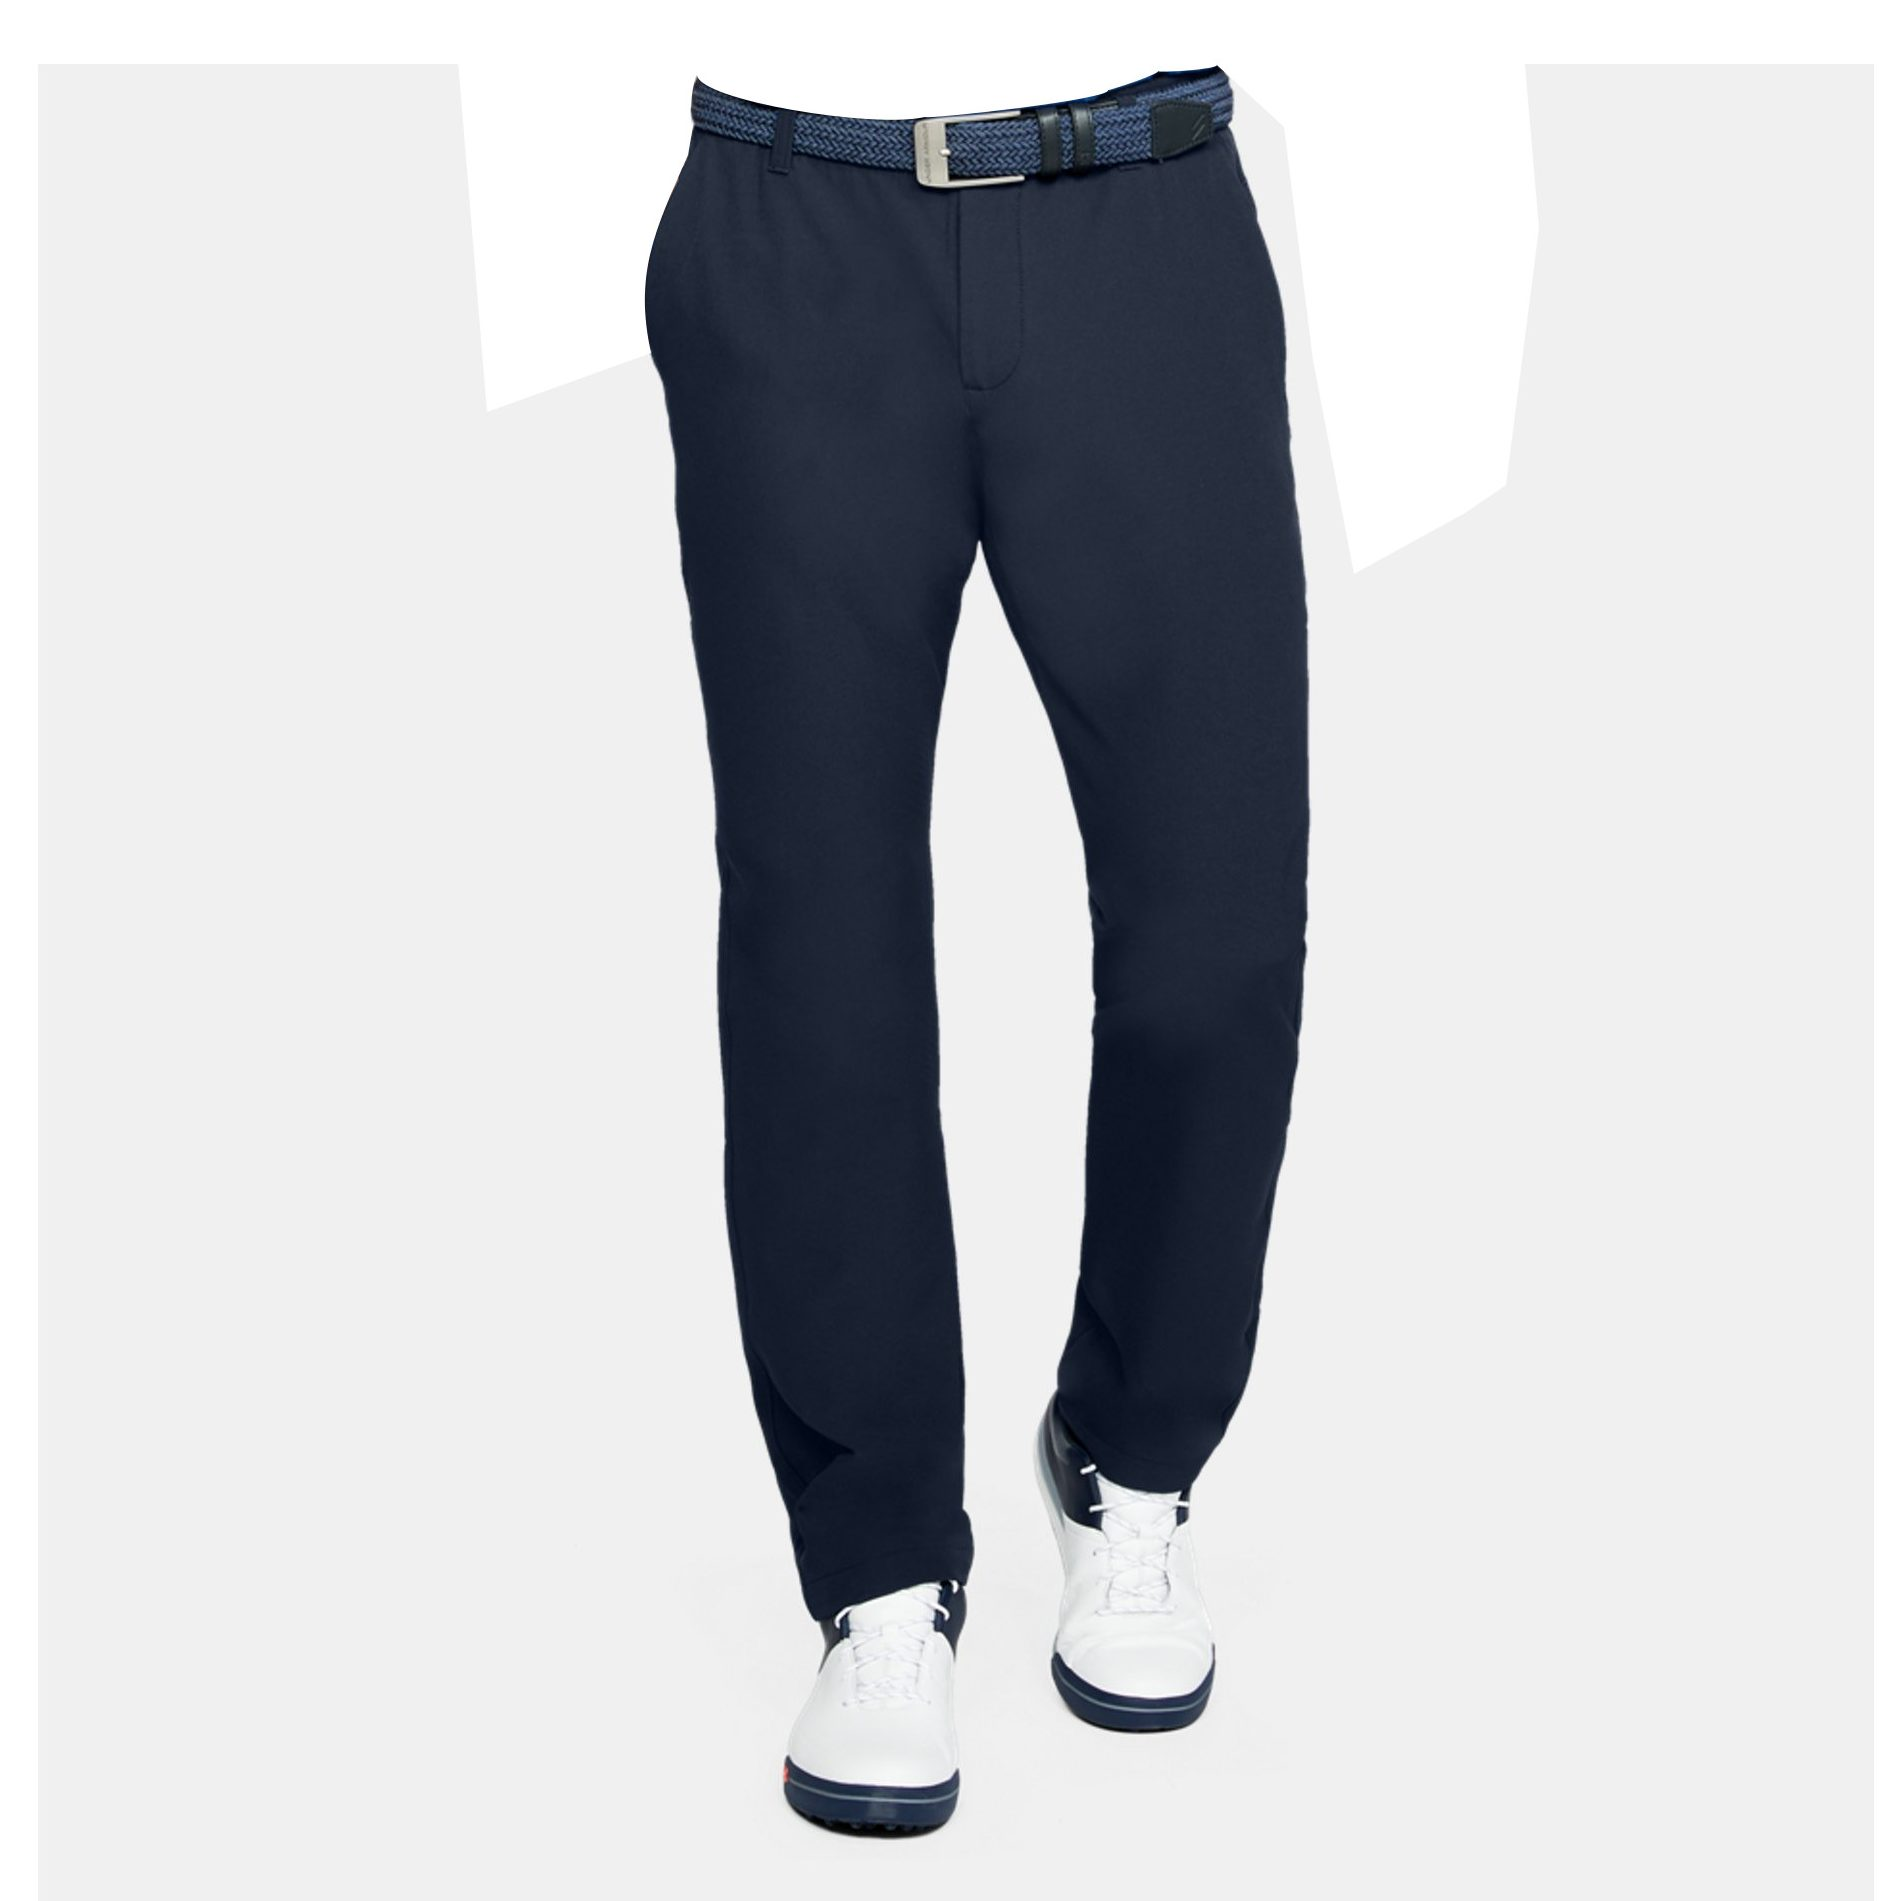 51907e5f93c3d Under Armour ColdGear Infrared Showdown Tapered Trousers Navy - O ...